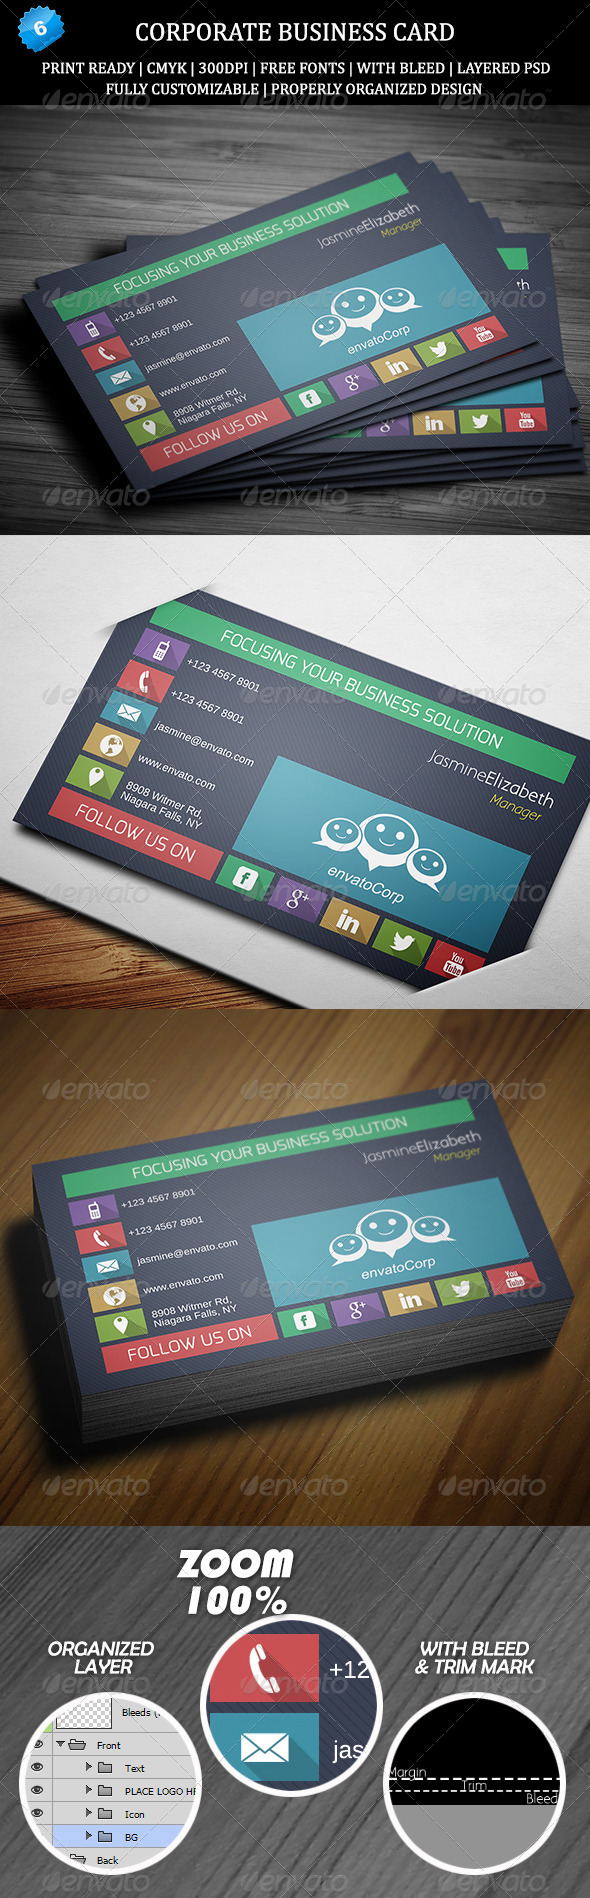 GraphicRiver Corporate Business Card 6 6480911